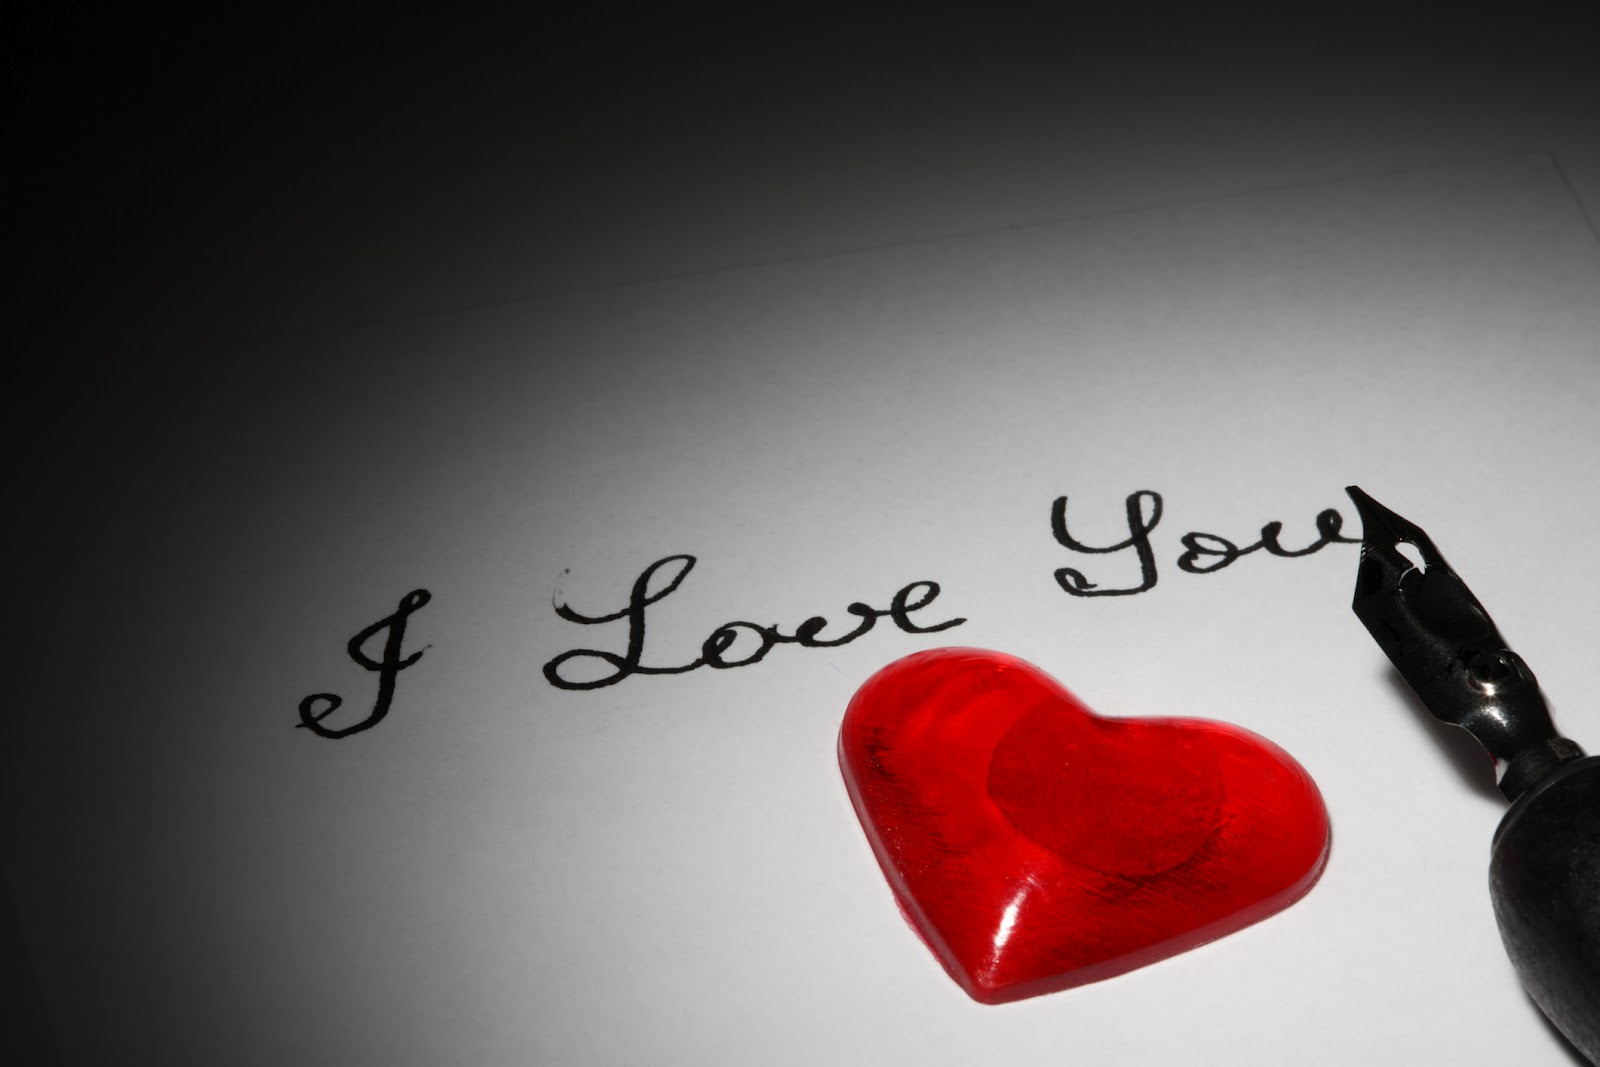 i love you hearts images - photo #46